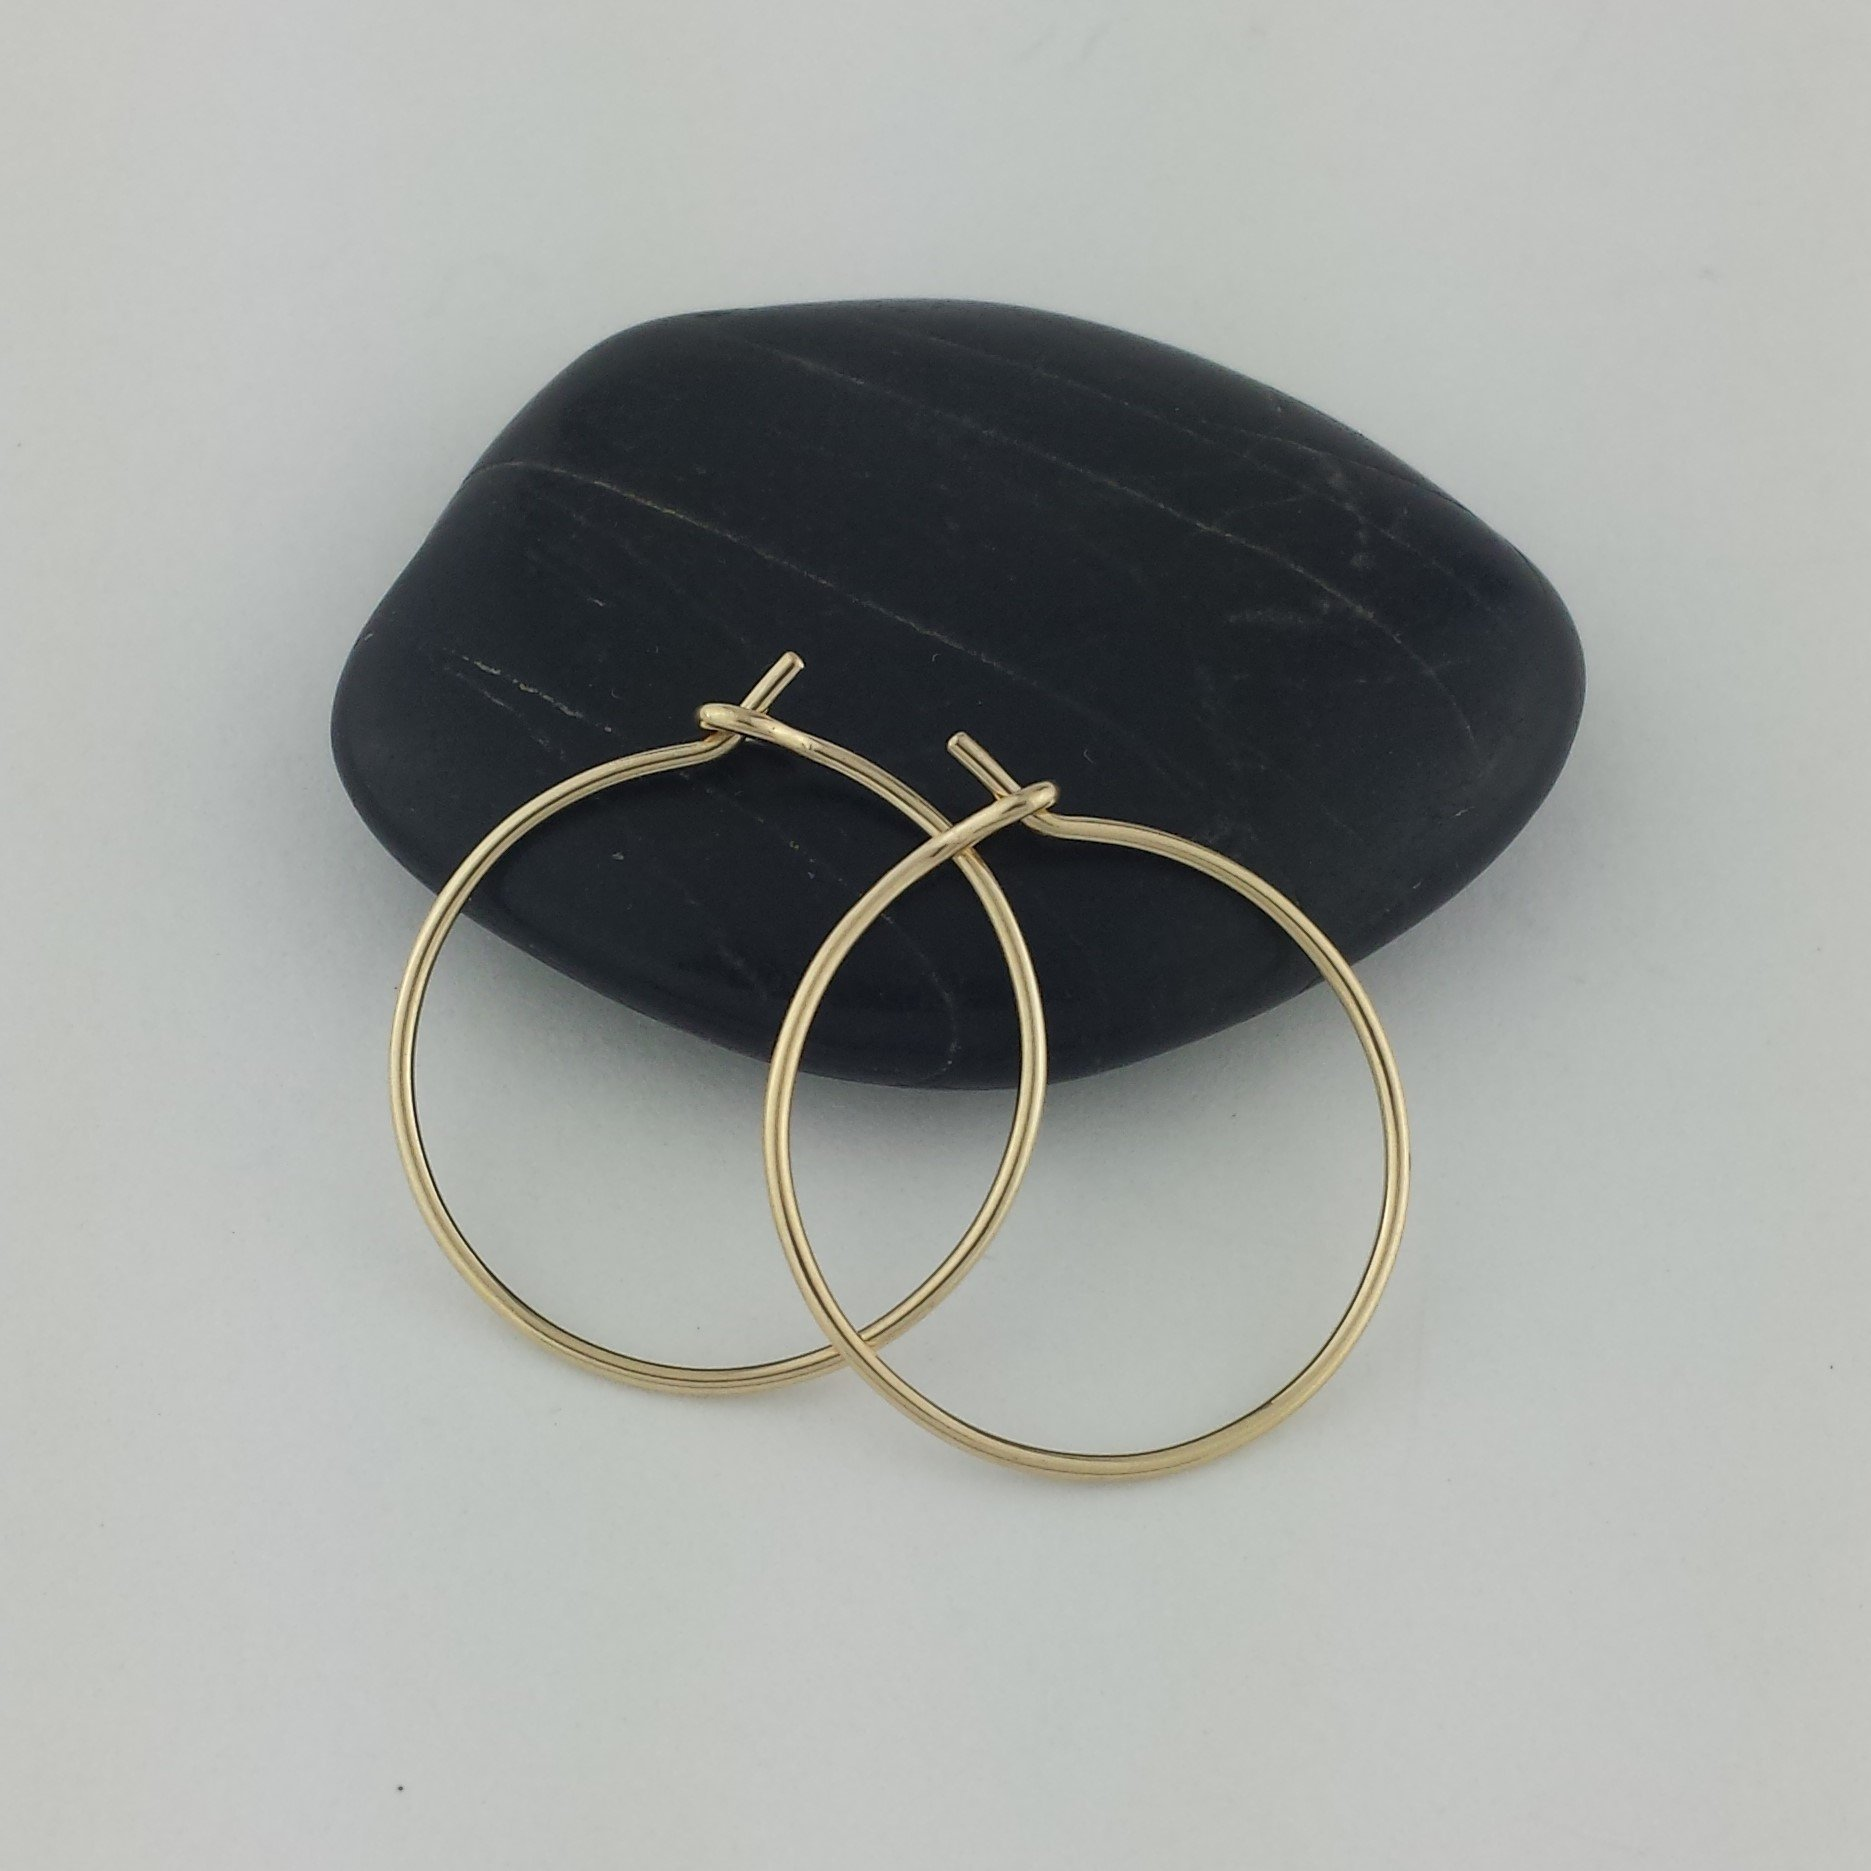 3/4'' Solid 14k Gold Hoop Earrings, 20g (.8mm) wire